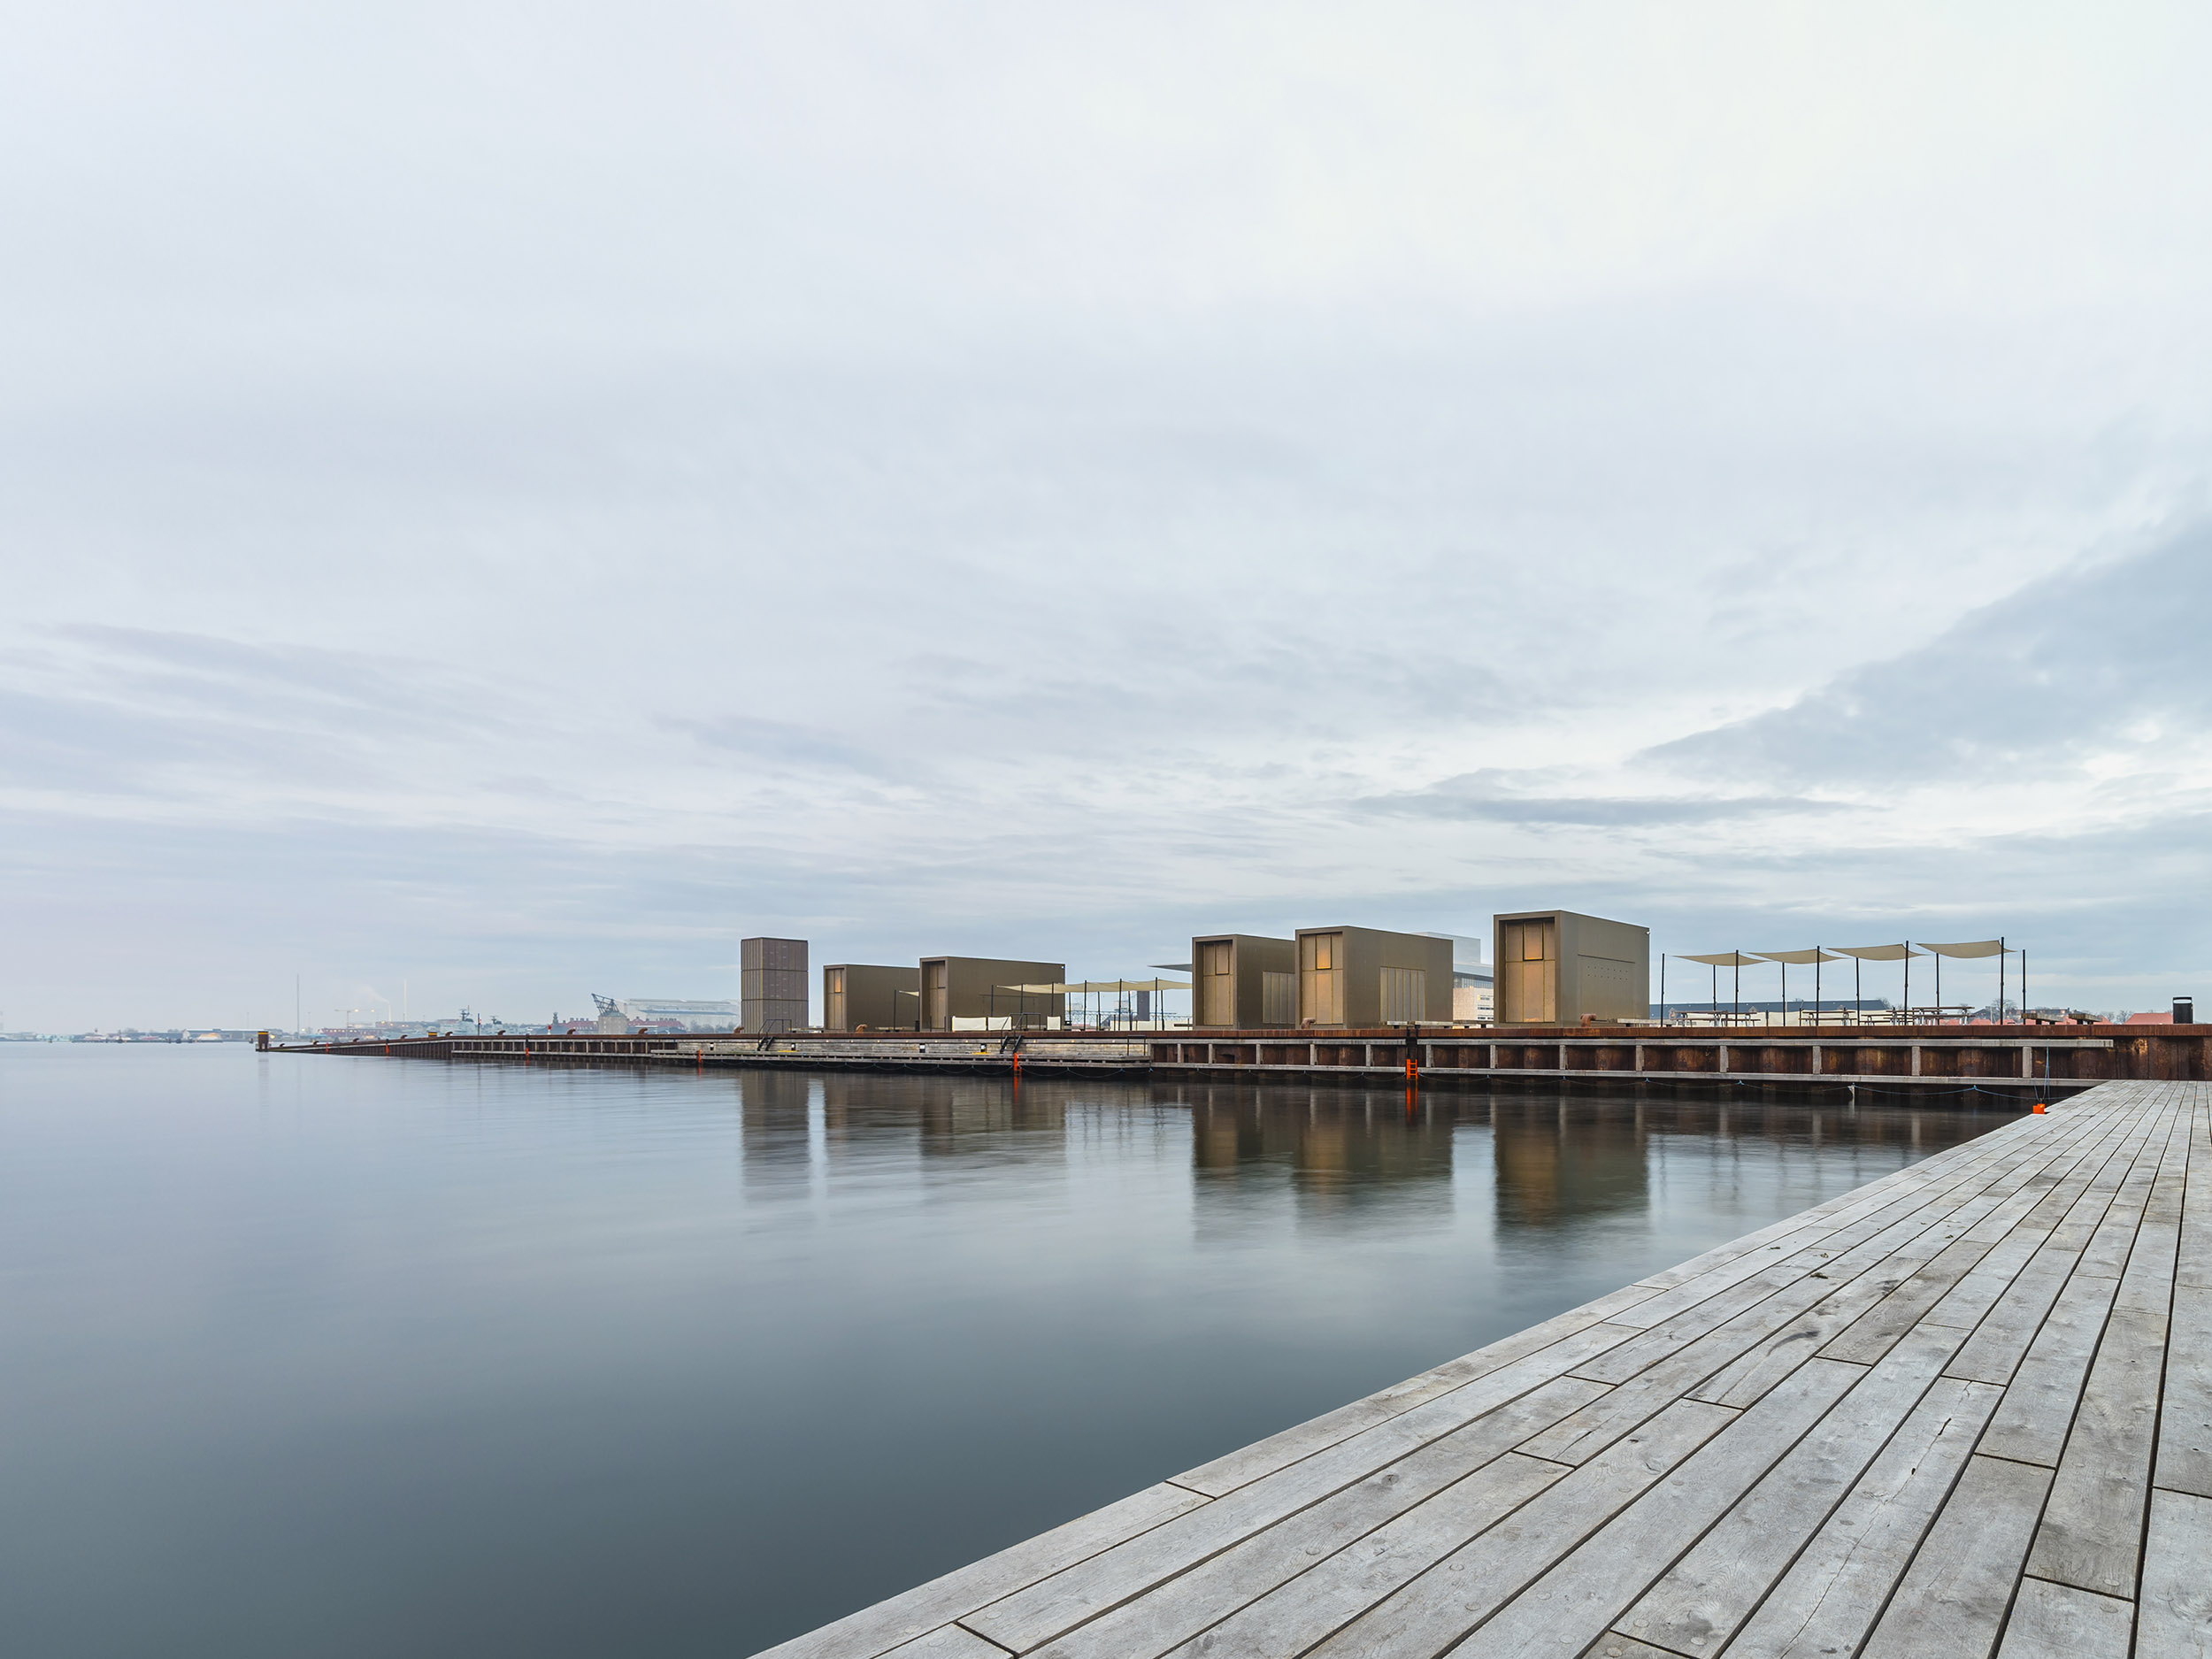 The Kvæsthus Pier -